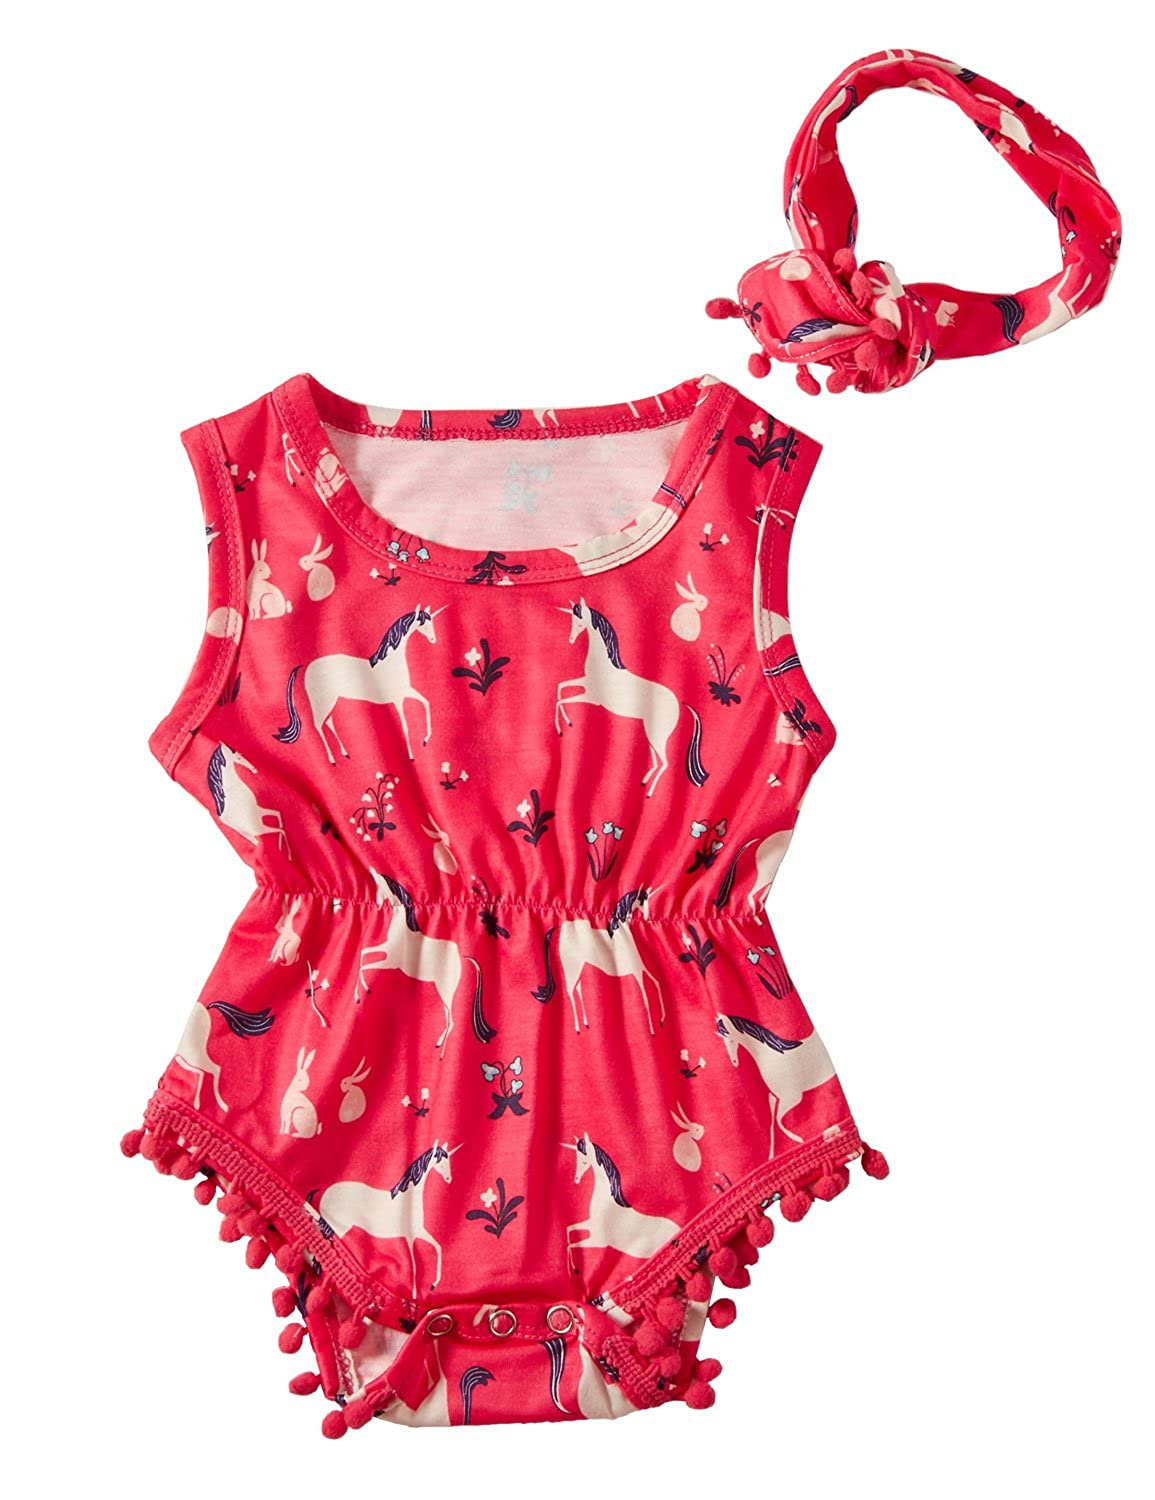 Funnycokid Baby Girls Romper Cute Ruffles Jumpsuit Headband